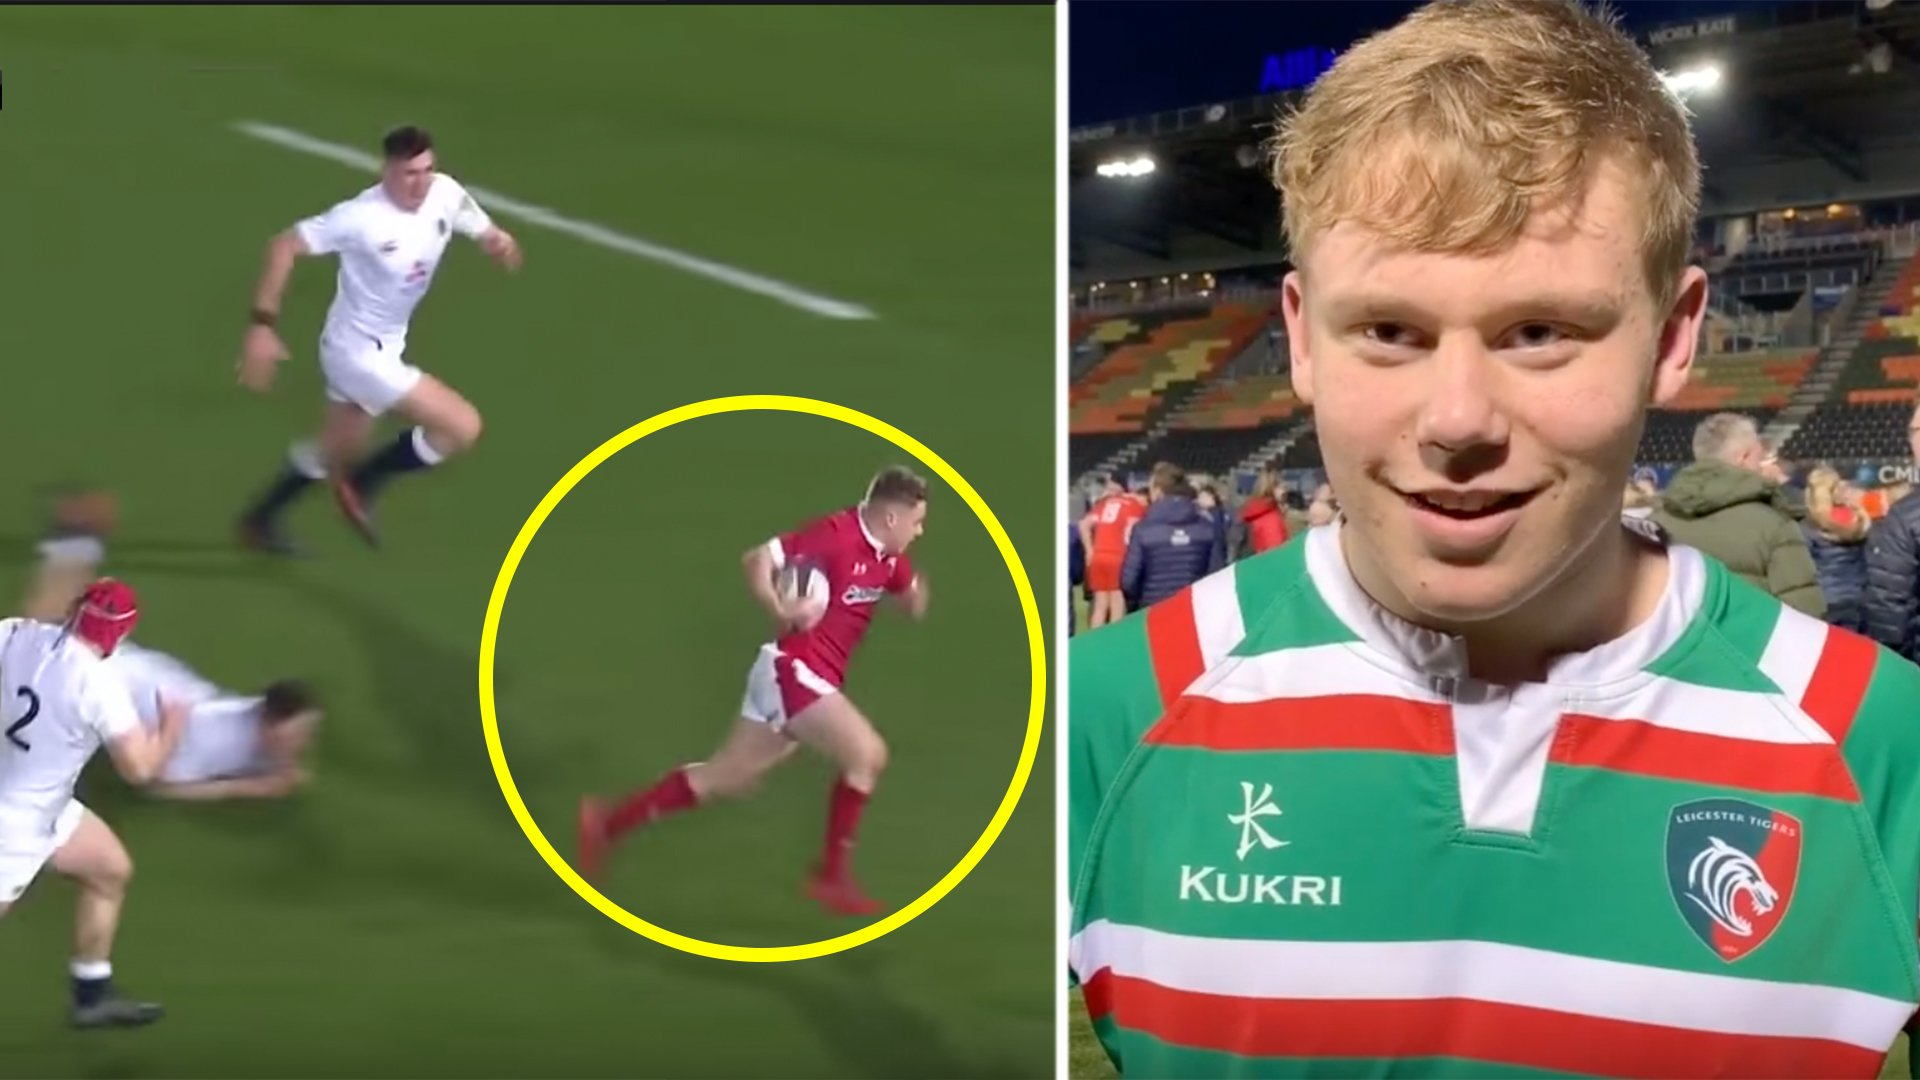 The unbelievable highlights of the  rugby wonderkid who ditched Leicester Tigers for Wales